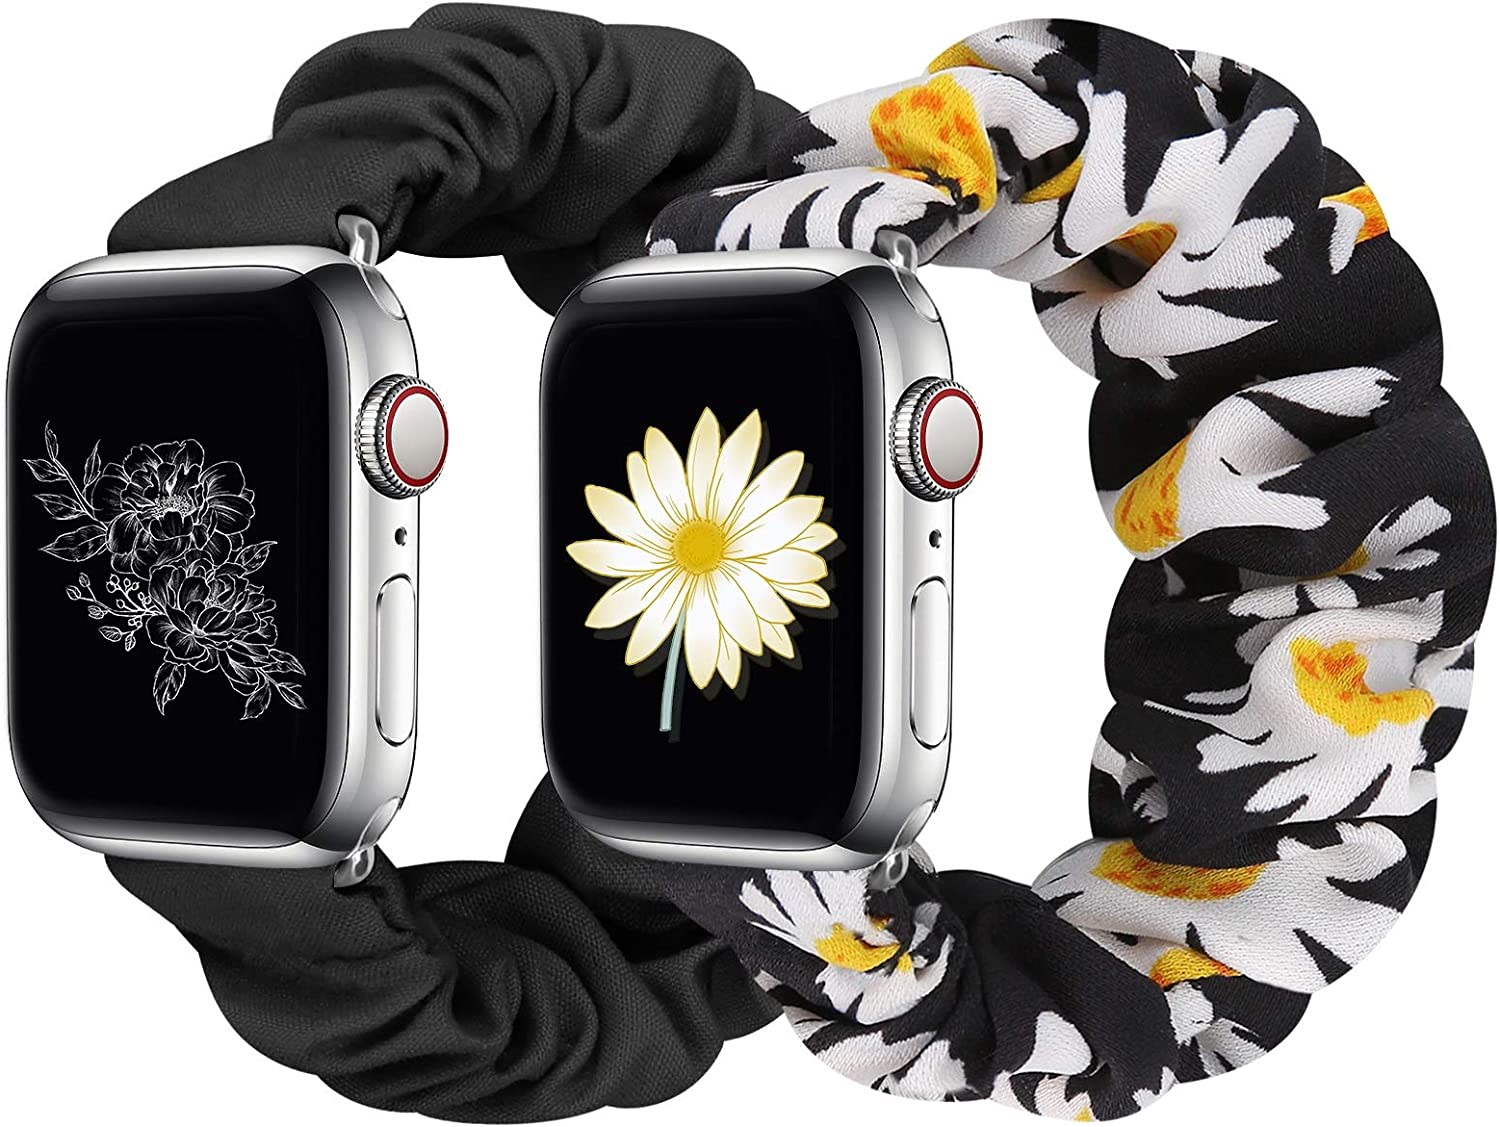 Huishang 2 PCS Scrunchie Apple Watch Band for Women, 38mm 40mm 42mm 44mm Apple Watch Bands, Cute Apple Watch Bands for Series 5/4/3/2/1 (S-38/40 Black+Daisy)